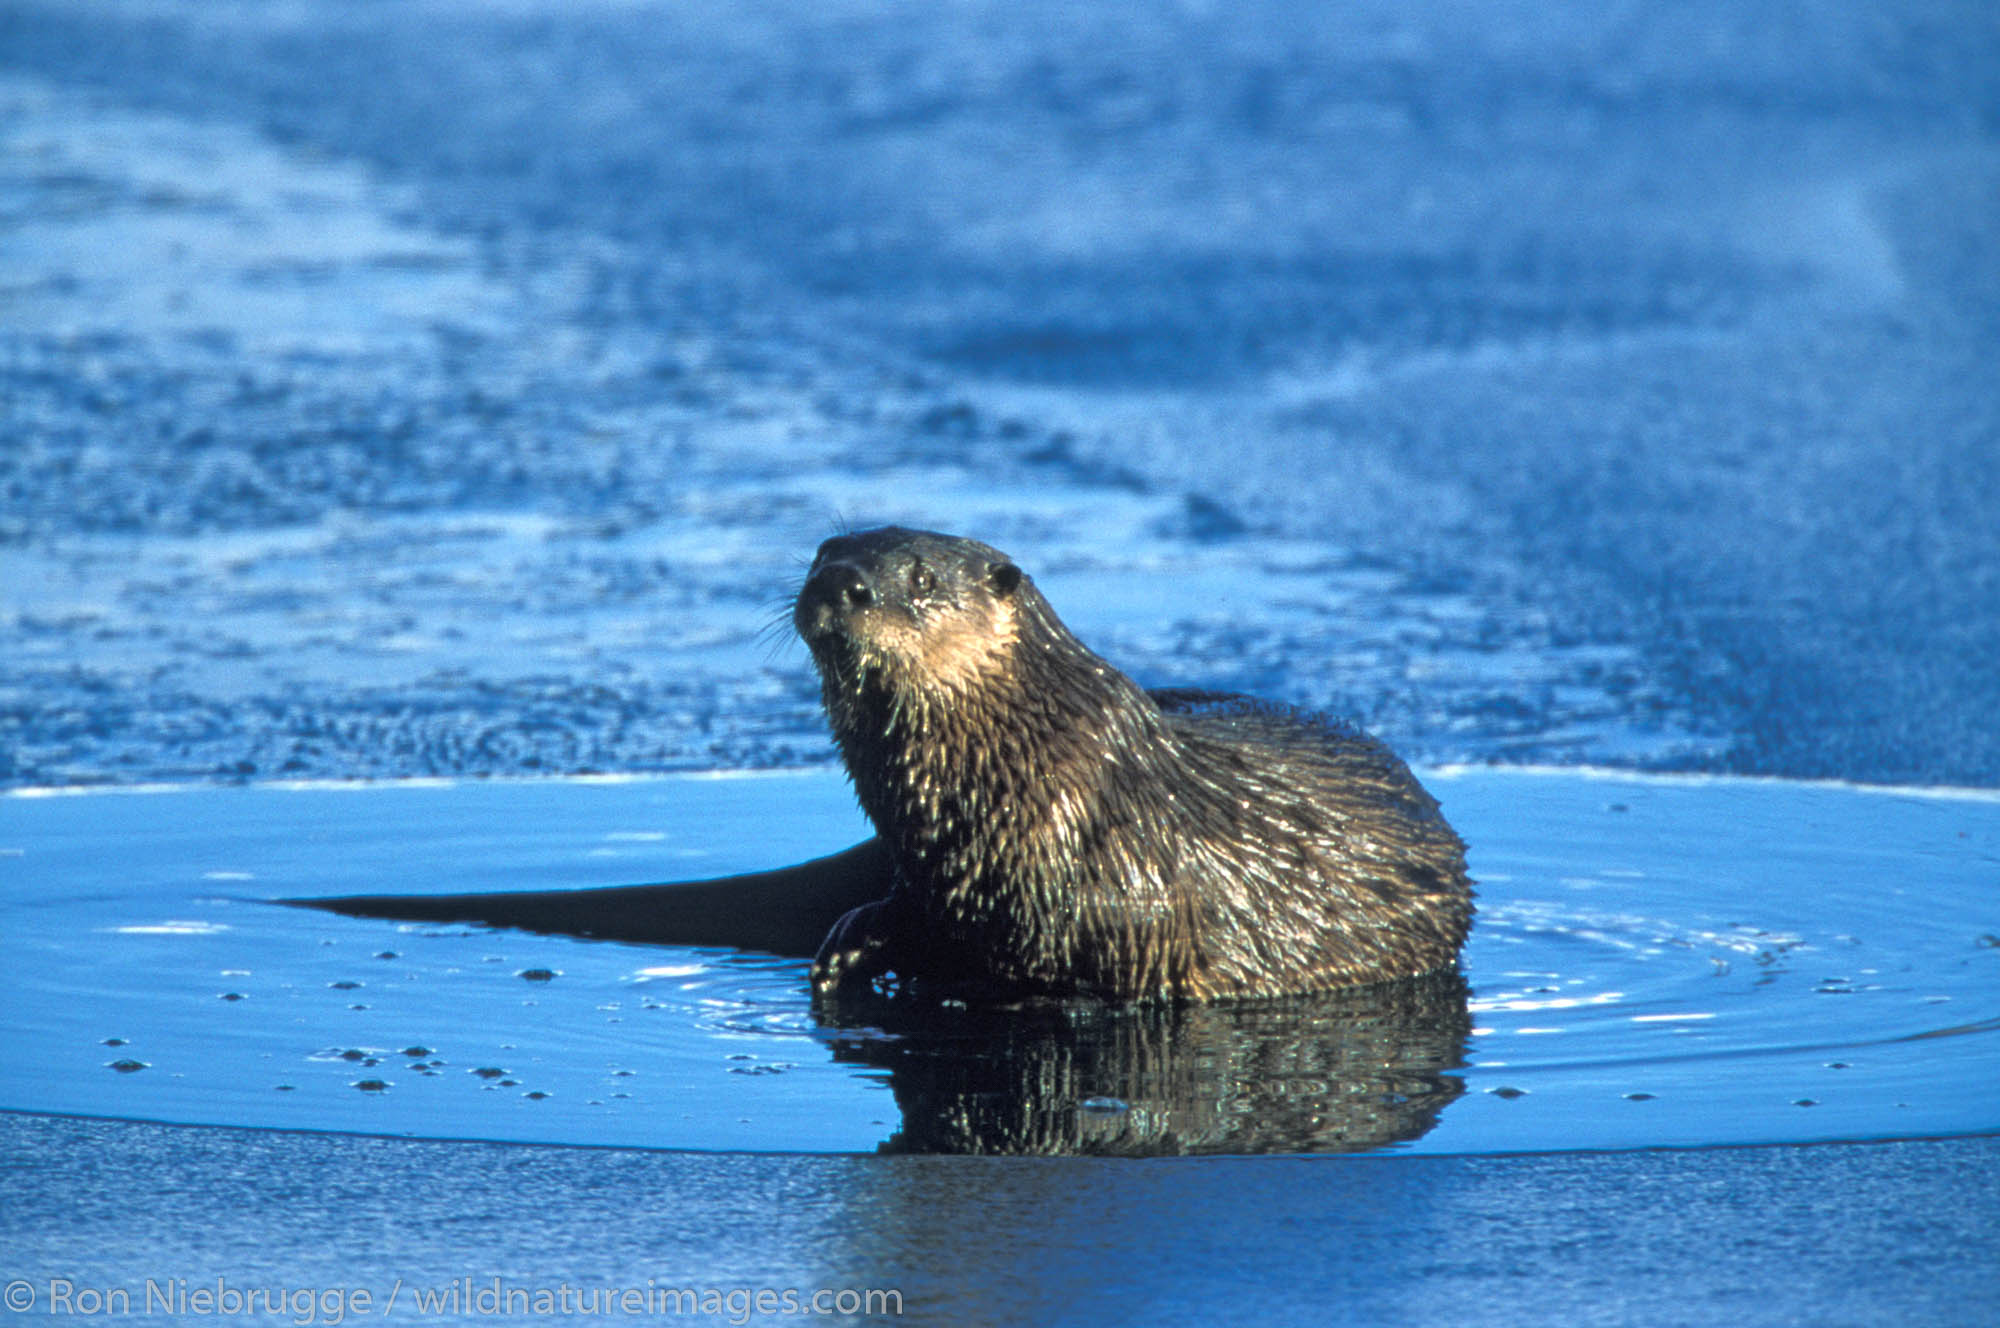 Northern River or Land Otter, (Lutra canadensis) sits on the ice, Seward, Alaska.